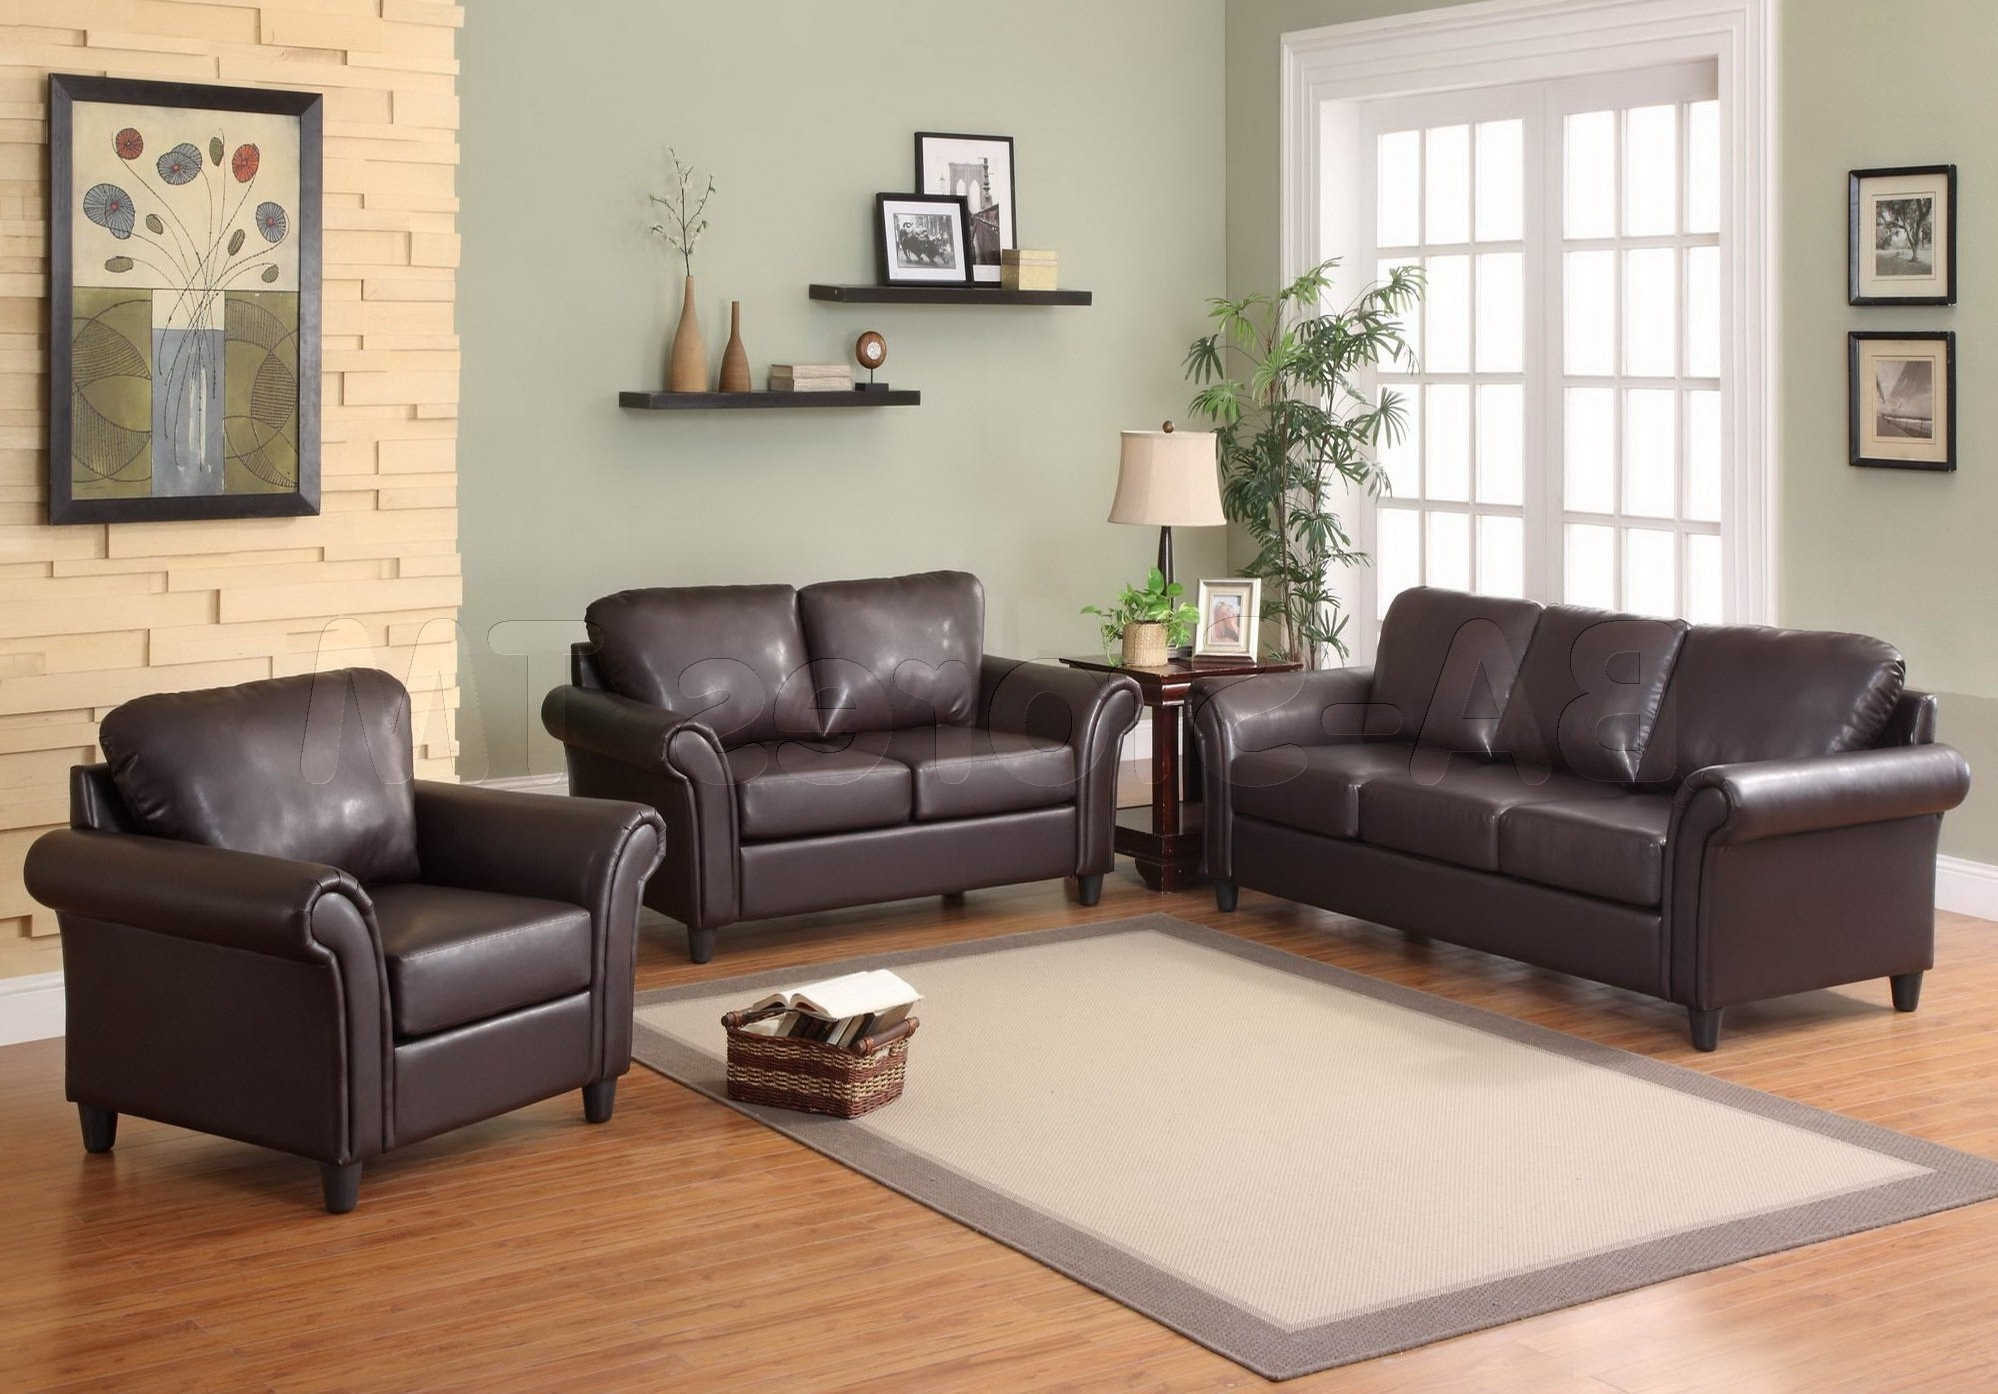 Brown Furniture Wall Accents In Fashionable Accent Wall With Brown Furniture Presenting Black Leather Sofa And (View 5 of 15)